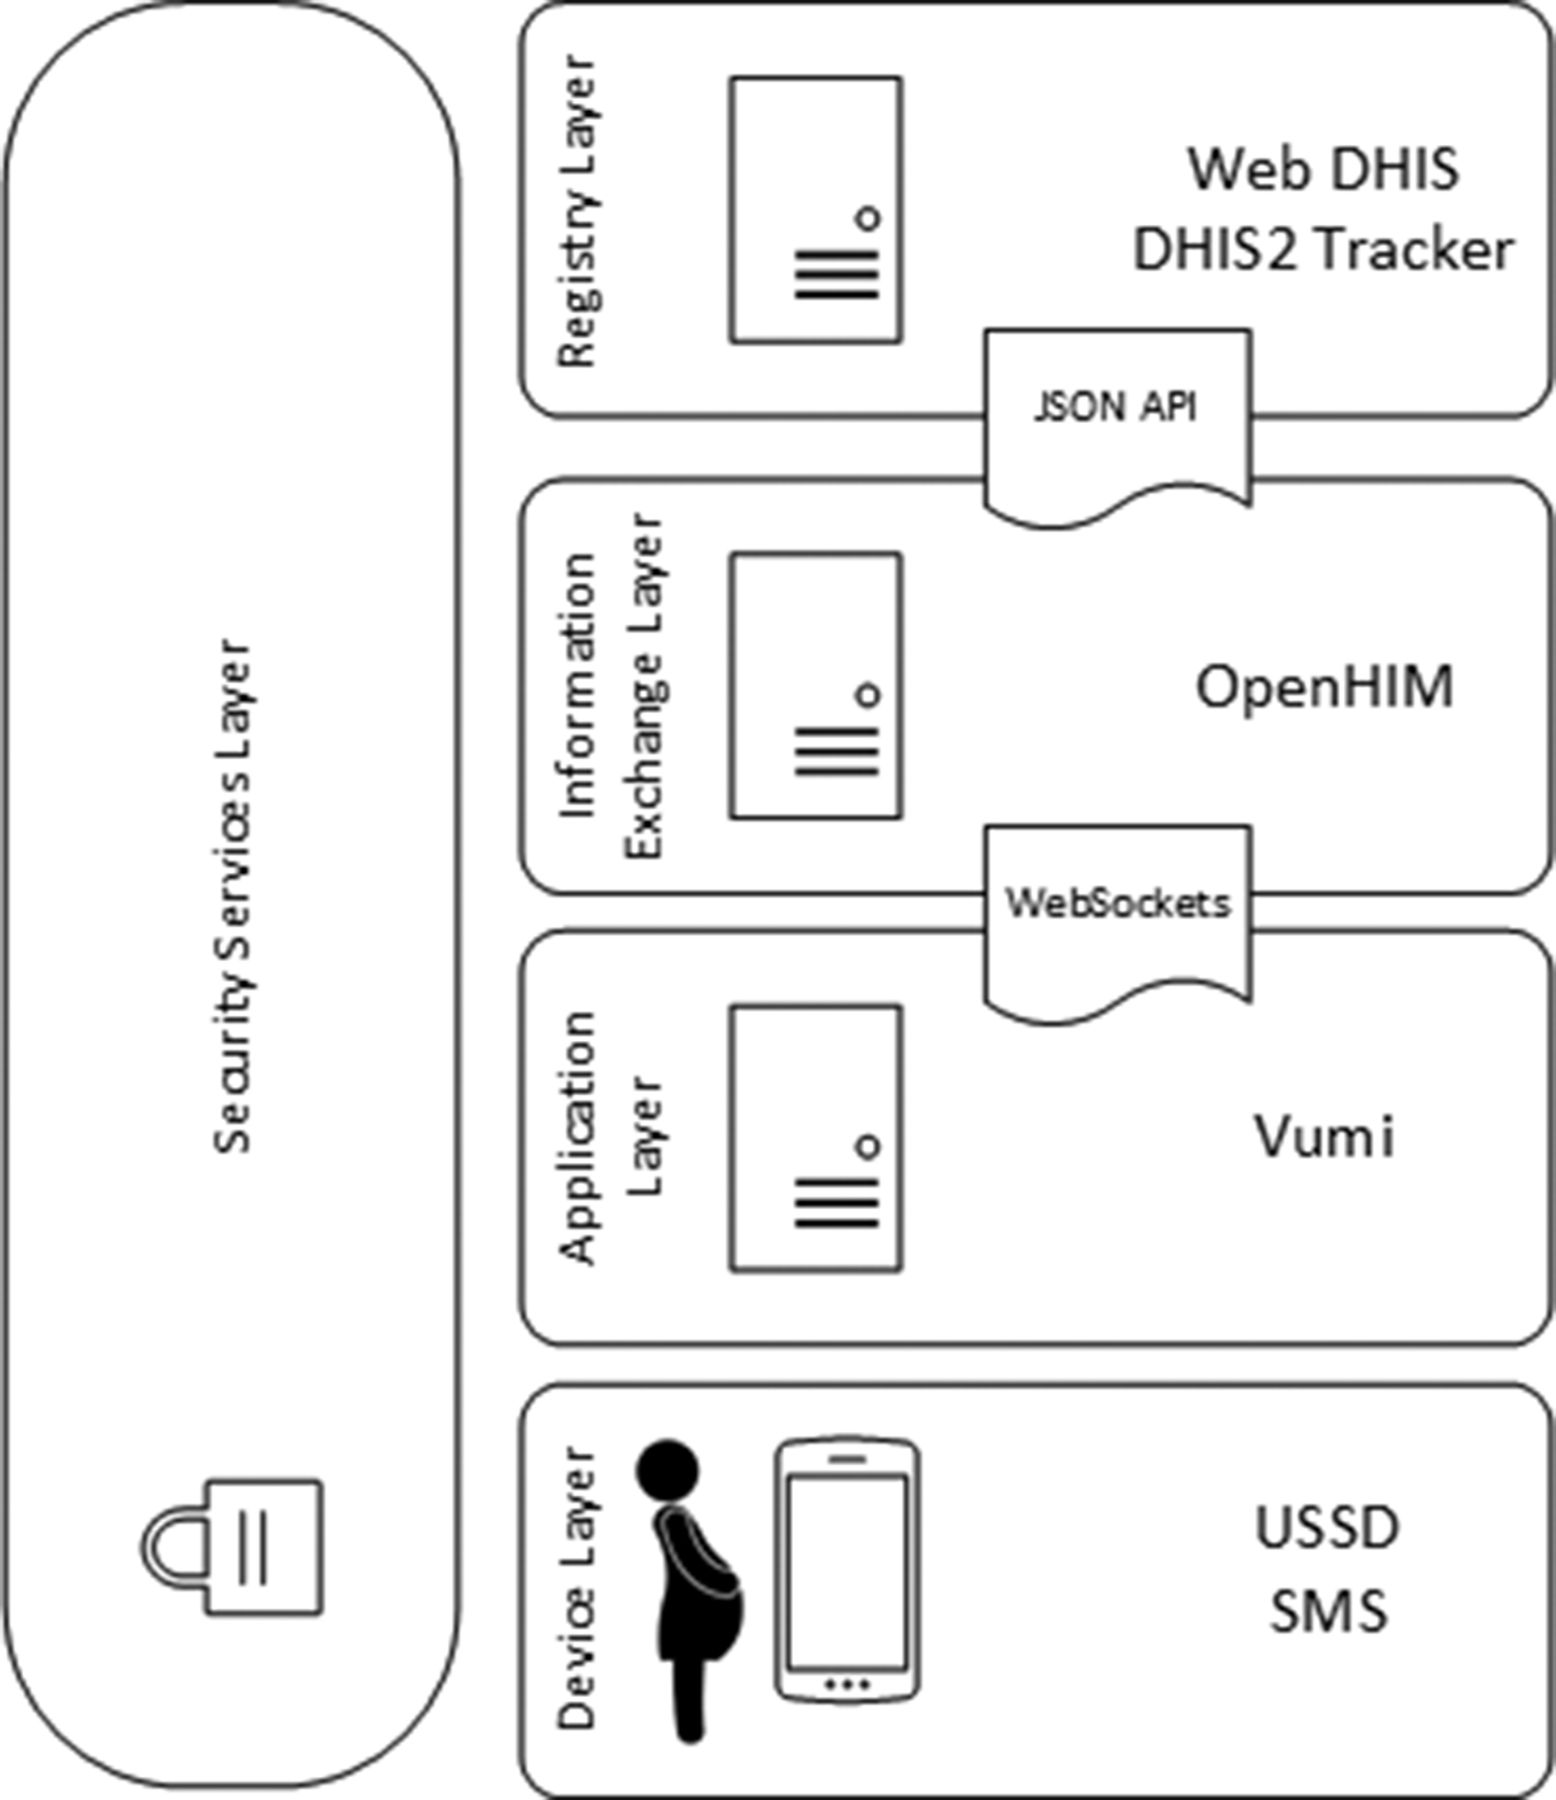 Designing for scale optimising the health information system download figure ccuart Images